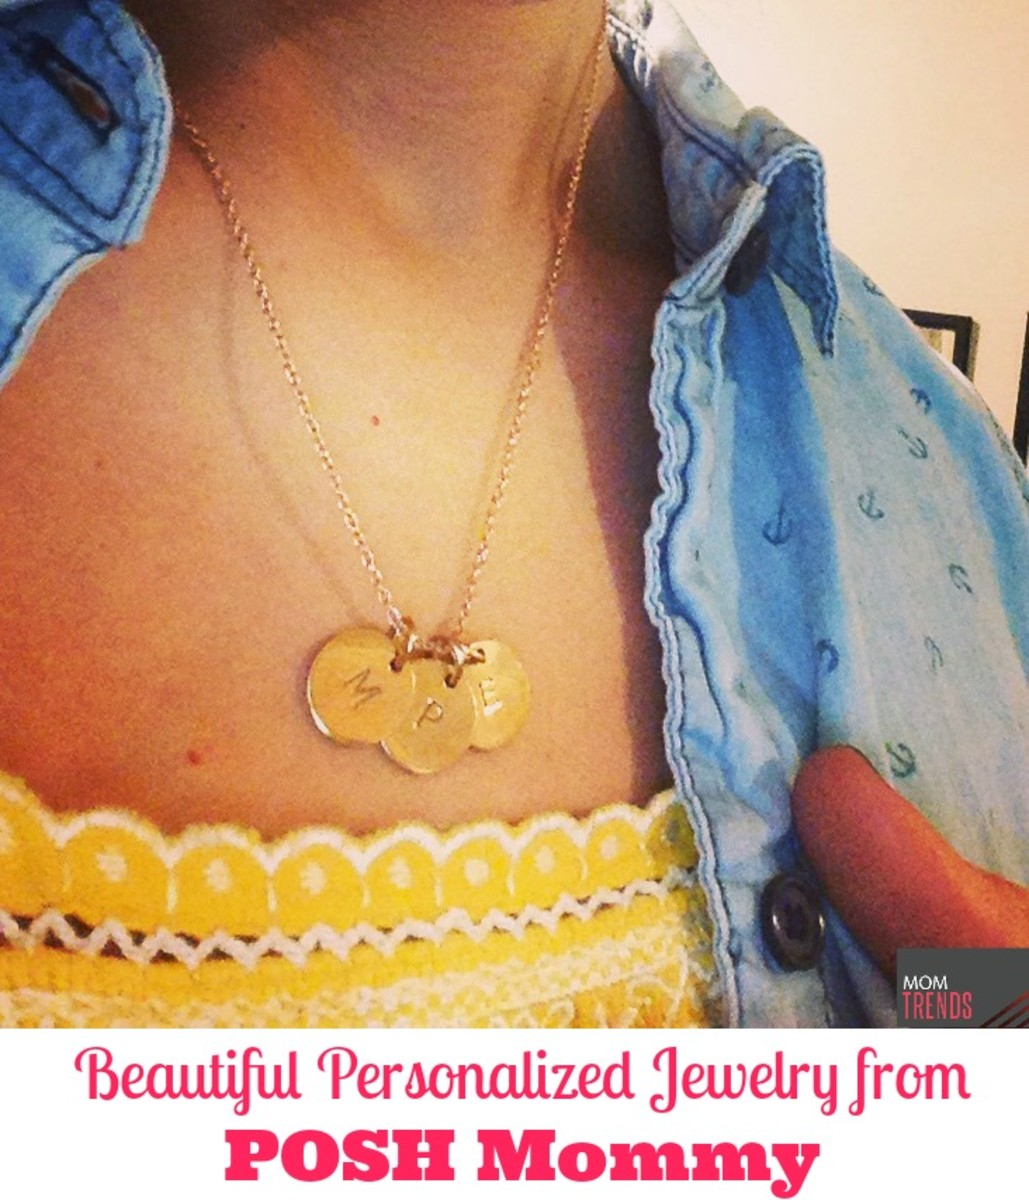 Personalized Jewelry from POSH Mommy